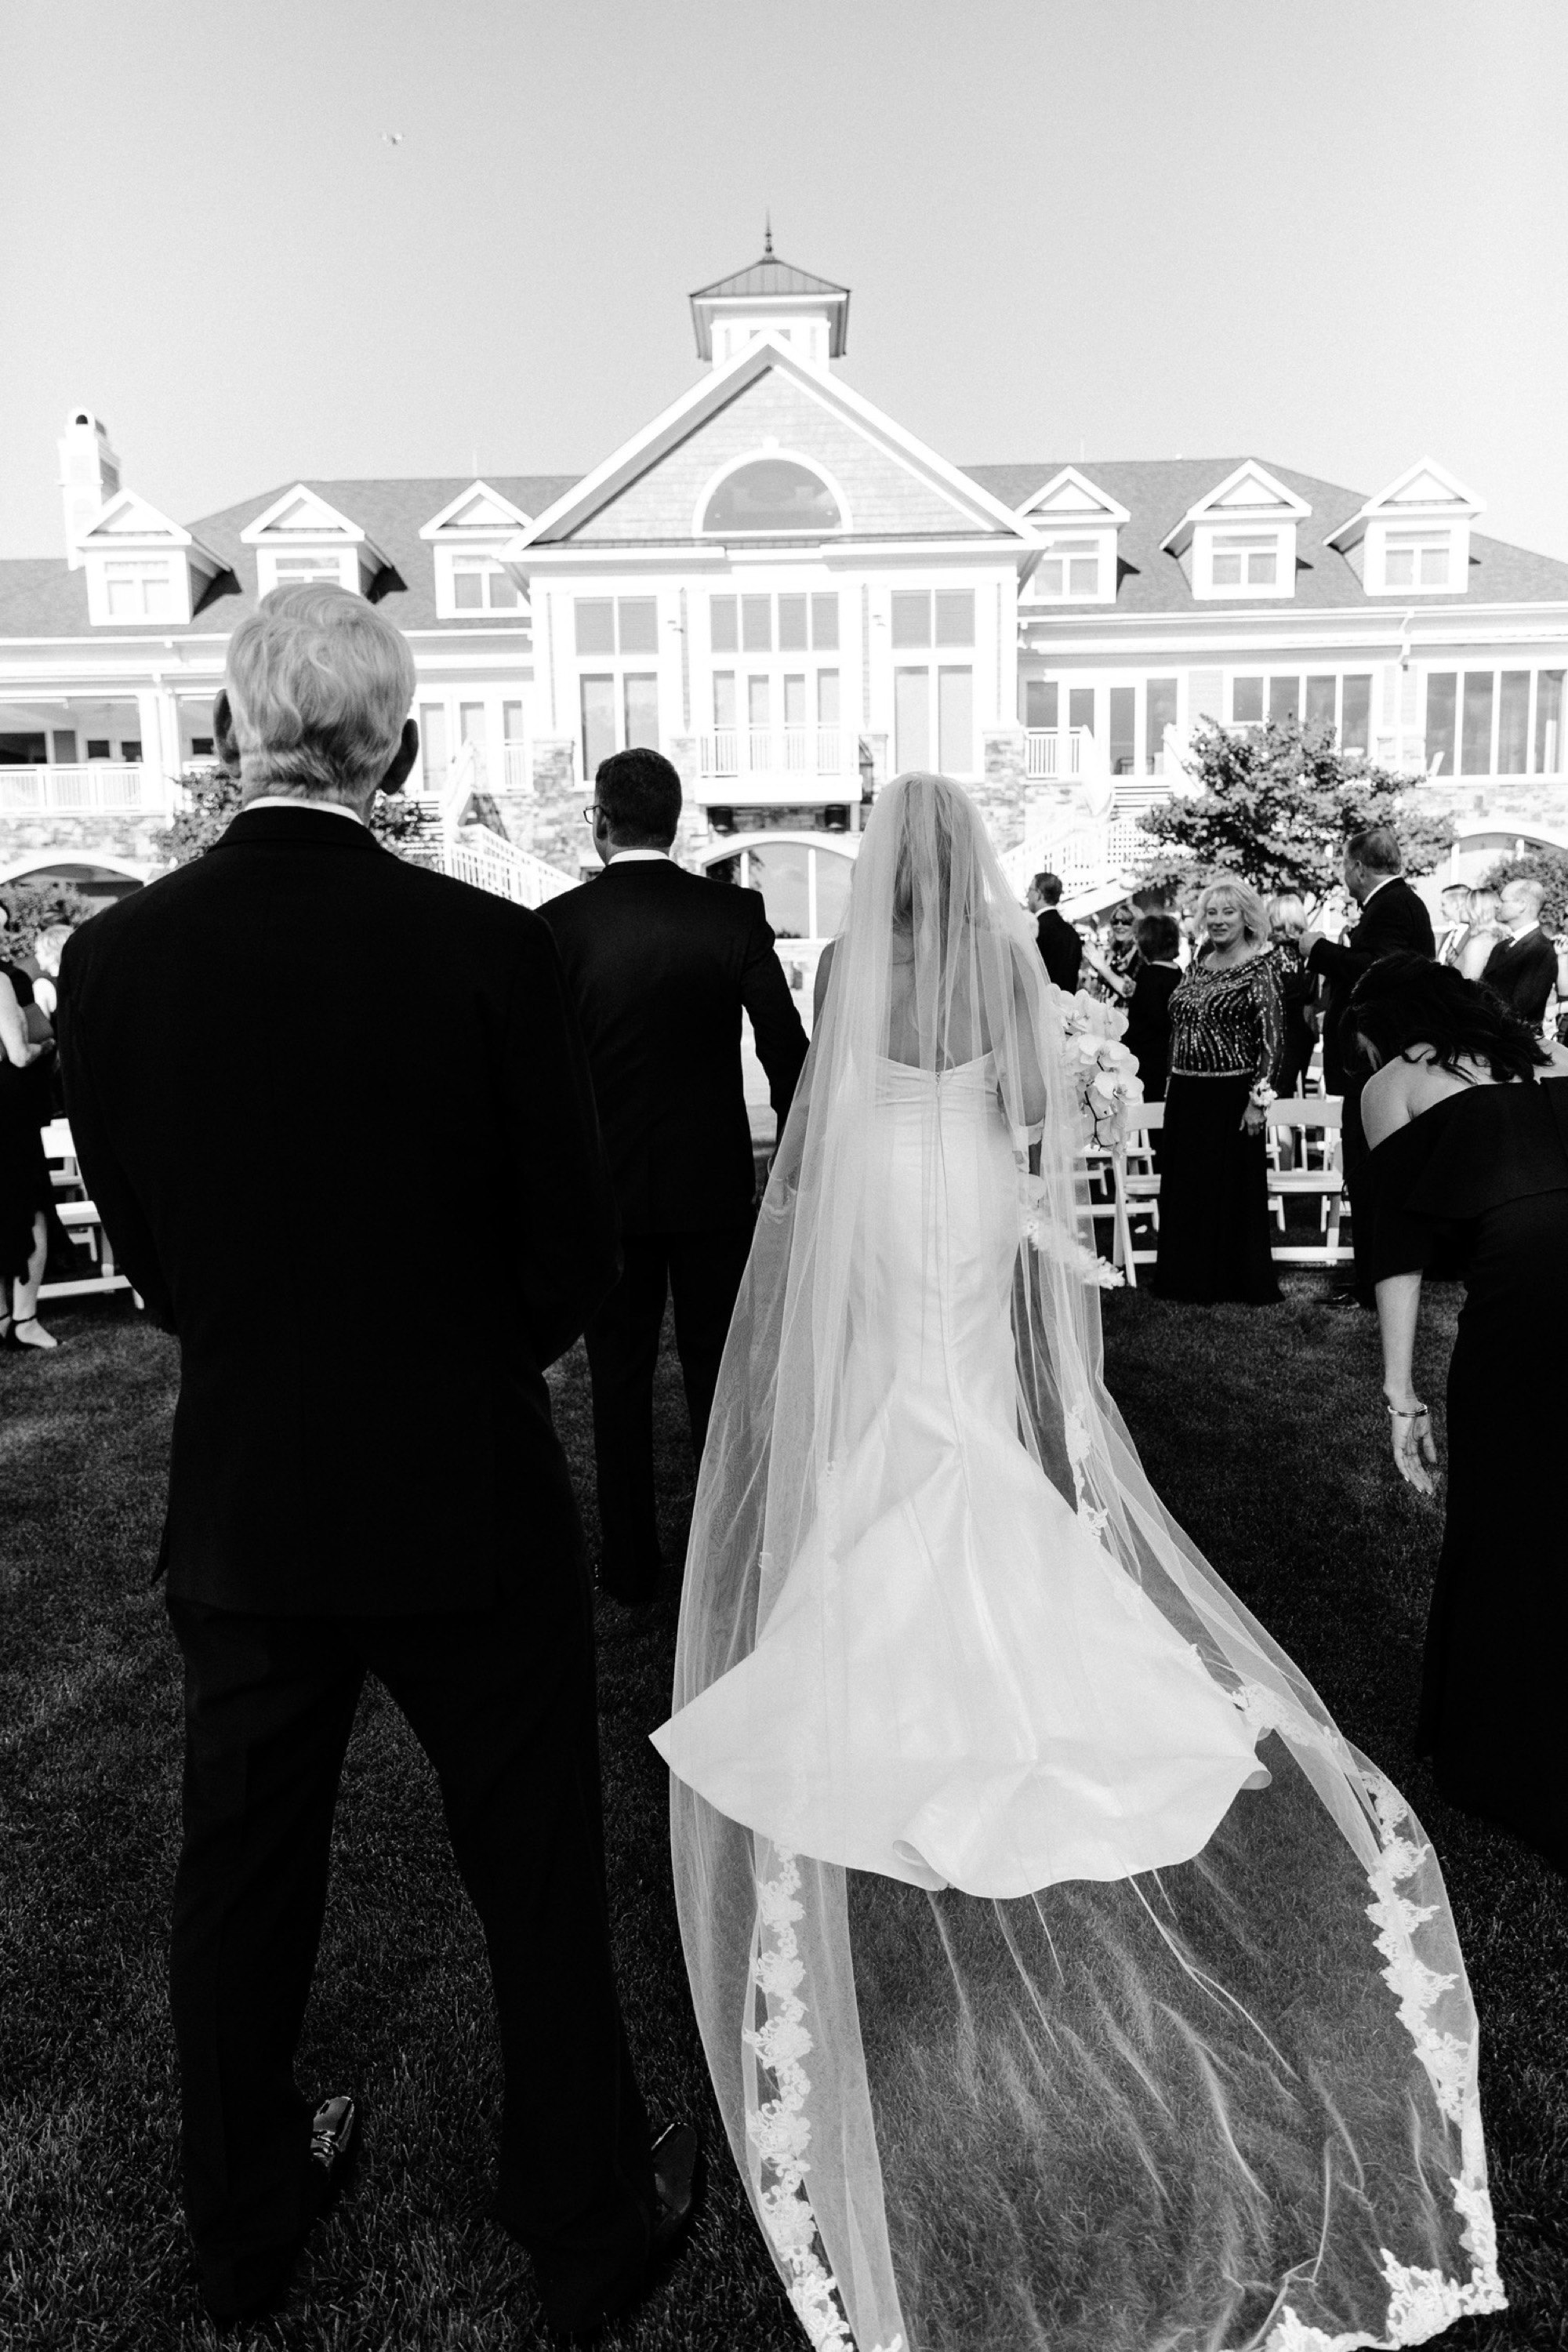 walking down the aisle as husband and wife at glen oaks wedding des moines